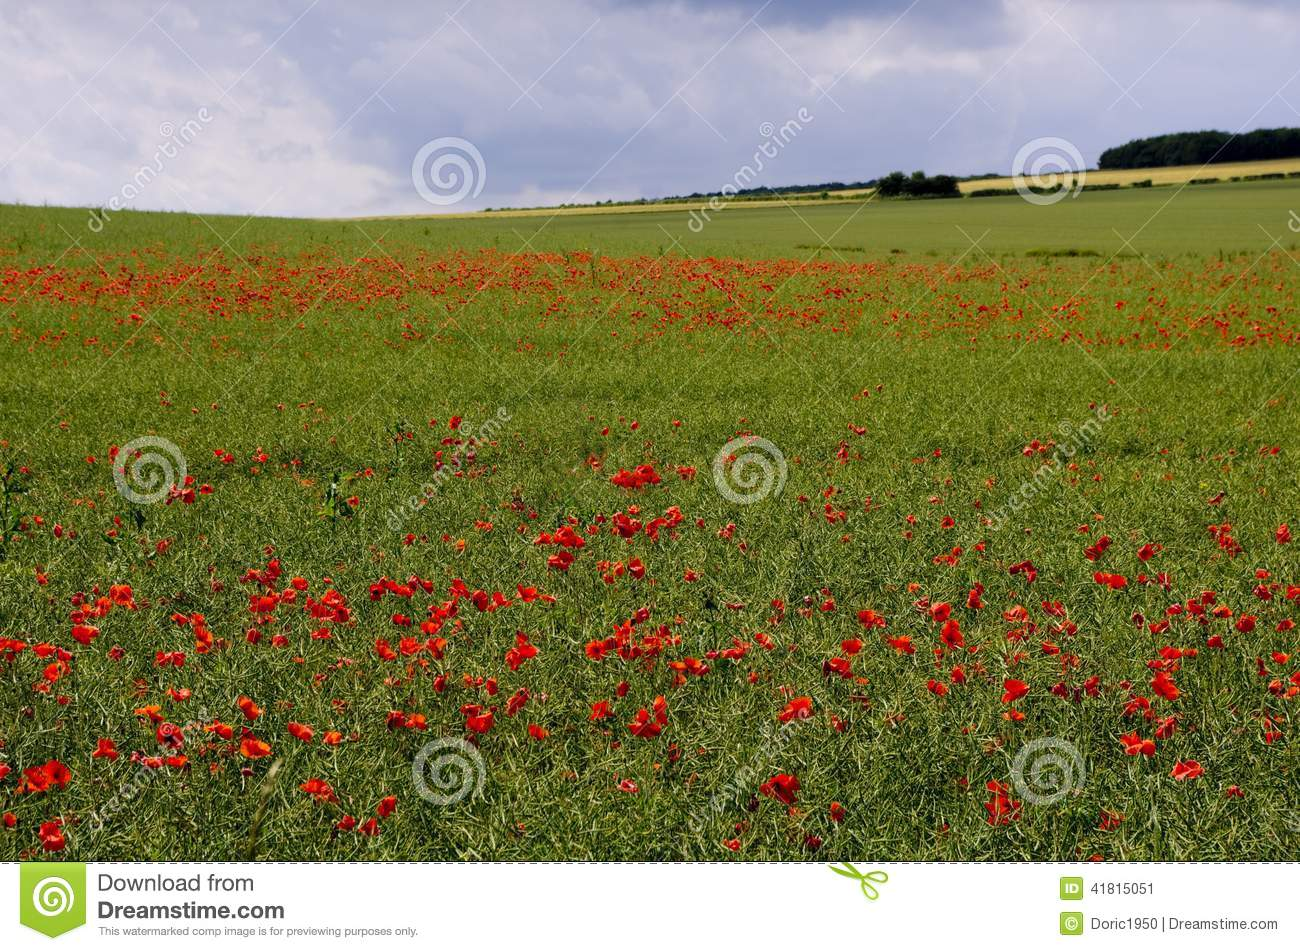 Image Of Red Poppies In An Oil Seed Rape Field The Rape Has Lost Its